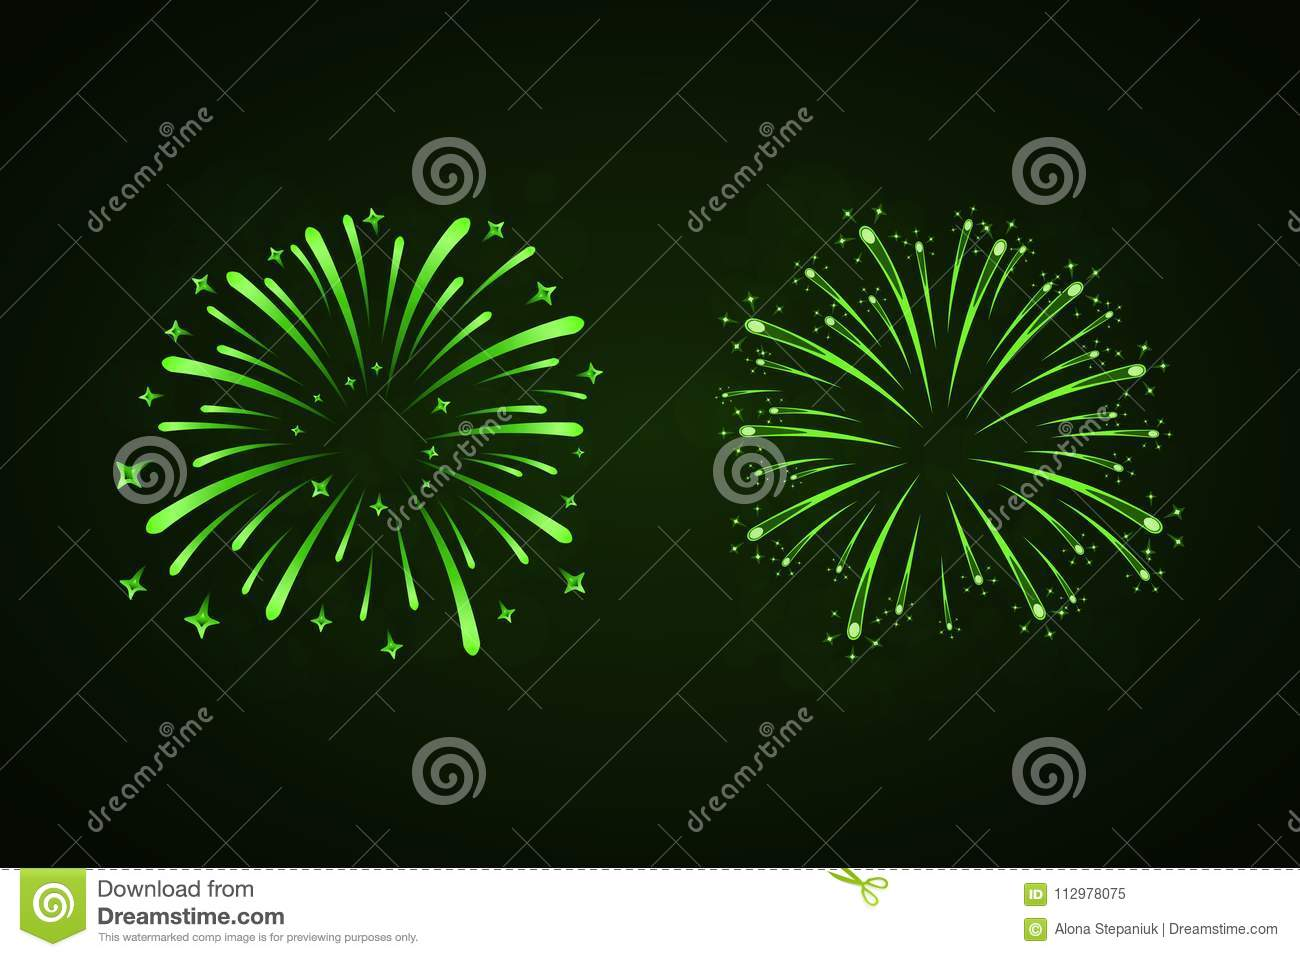 Beautiful green fireworks set. Bright fireworks isolated black background. Light green decoration fireworks for